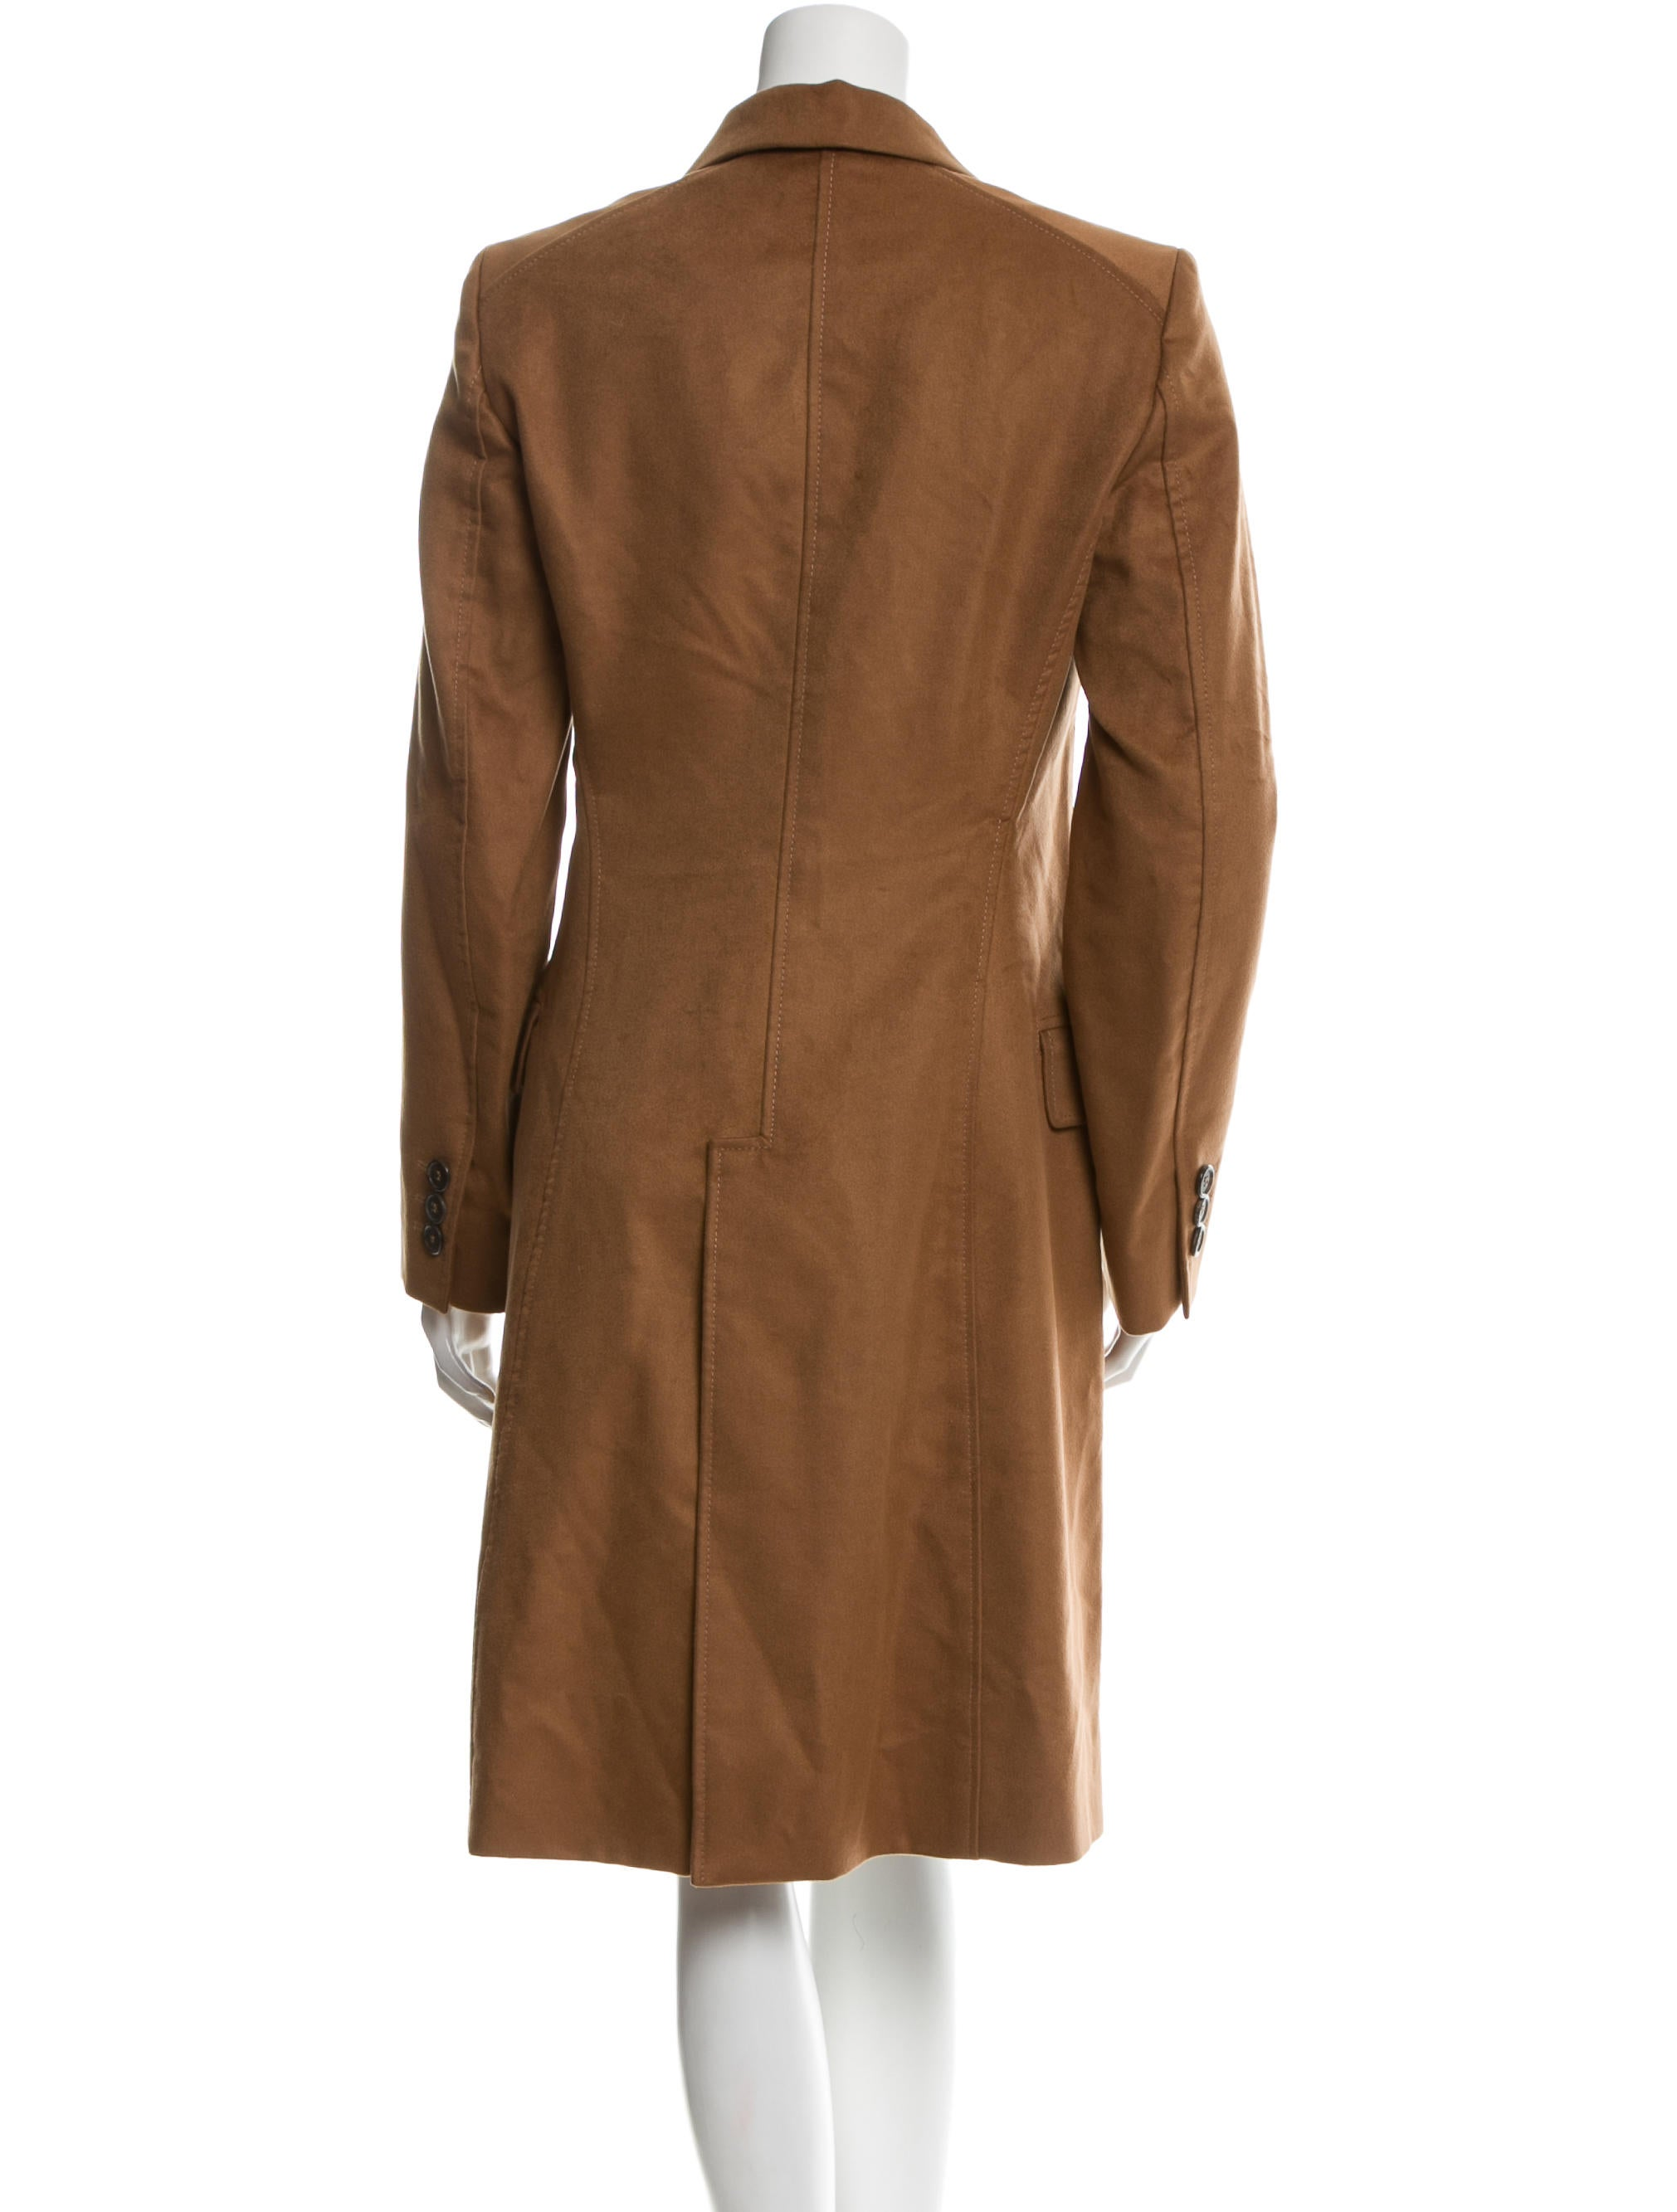 Find great deals on eBay for fur lapel coat. Shop with confidence.